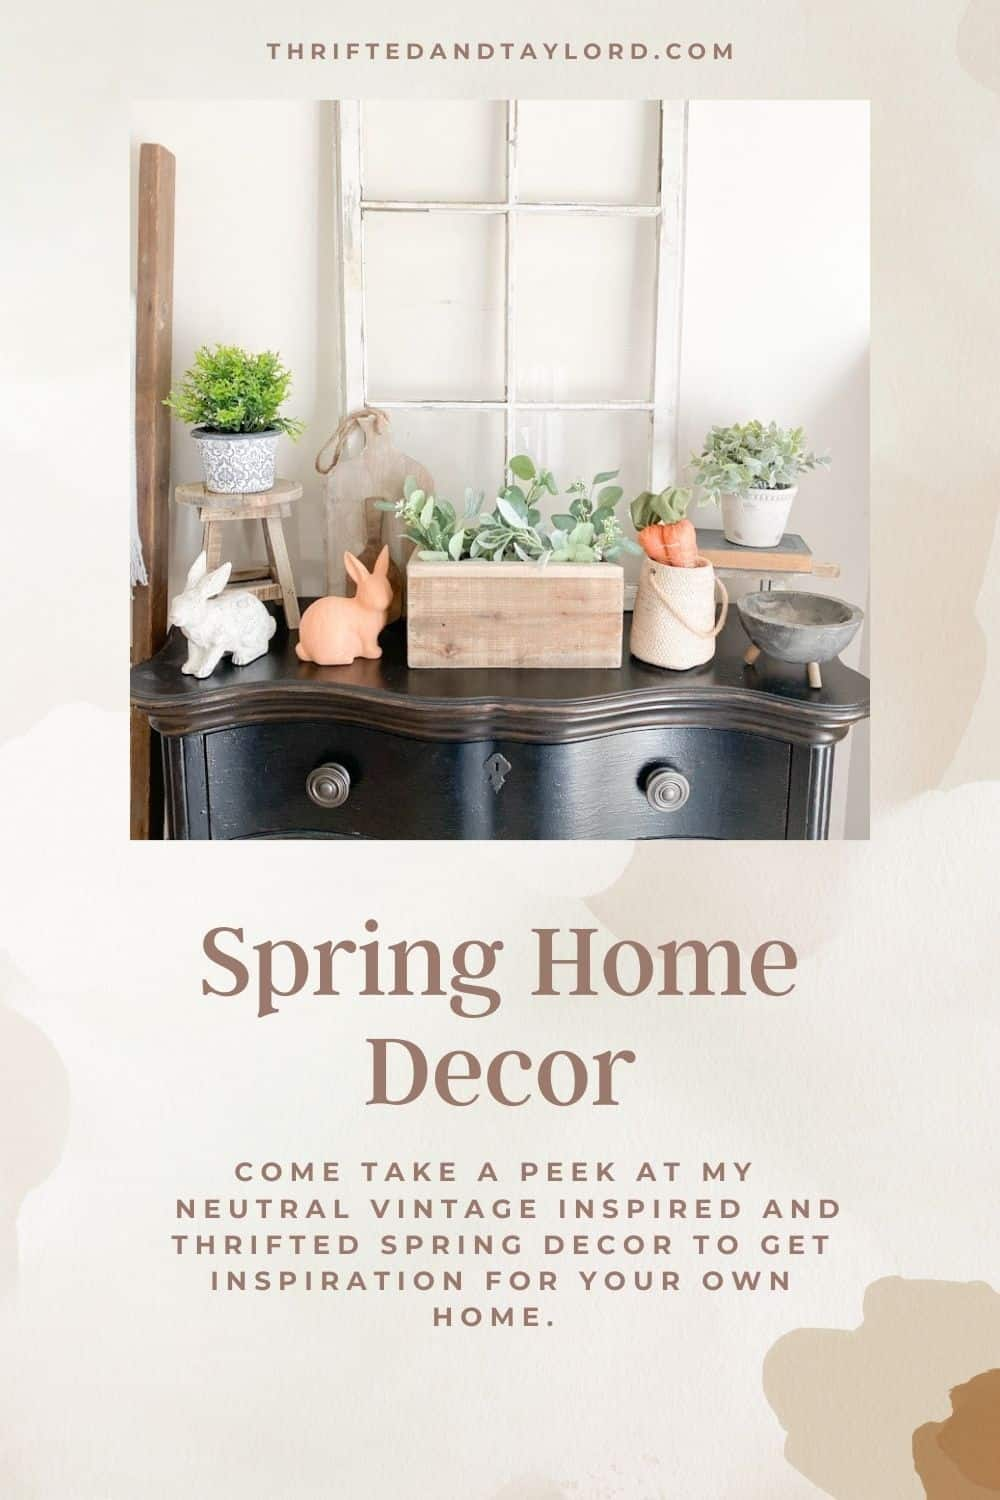 Spring Home Tour | Neutral Vintage Inspired and Thrifted Home Décor